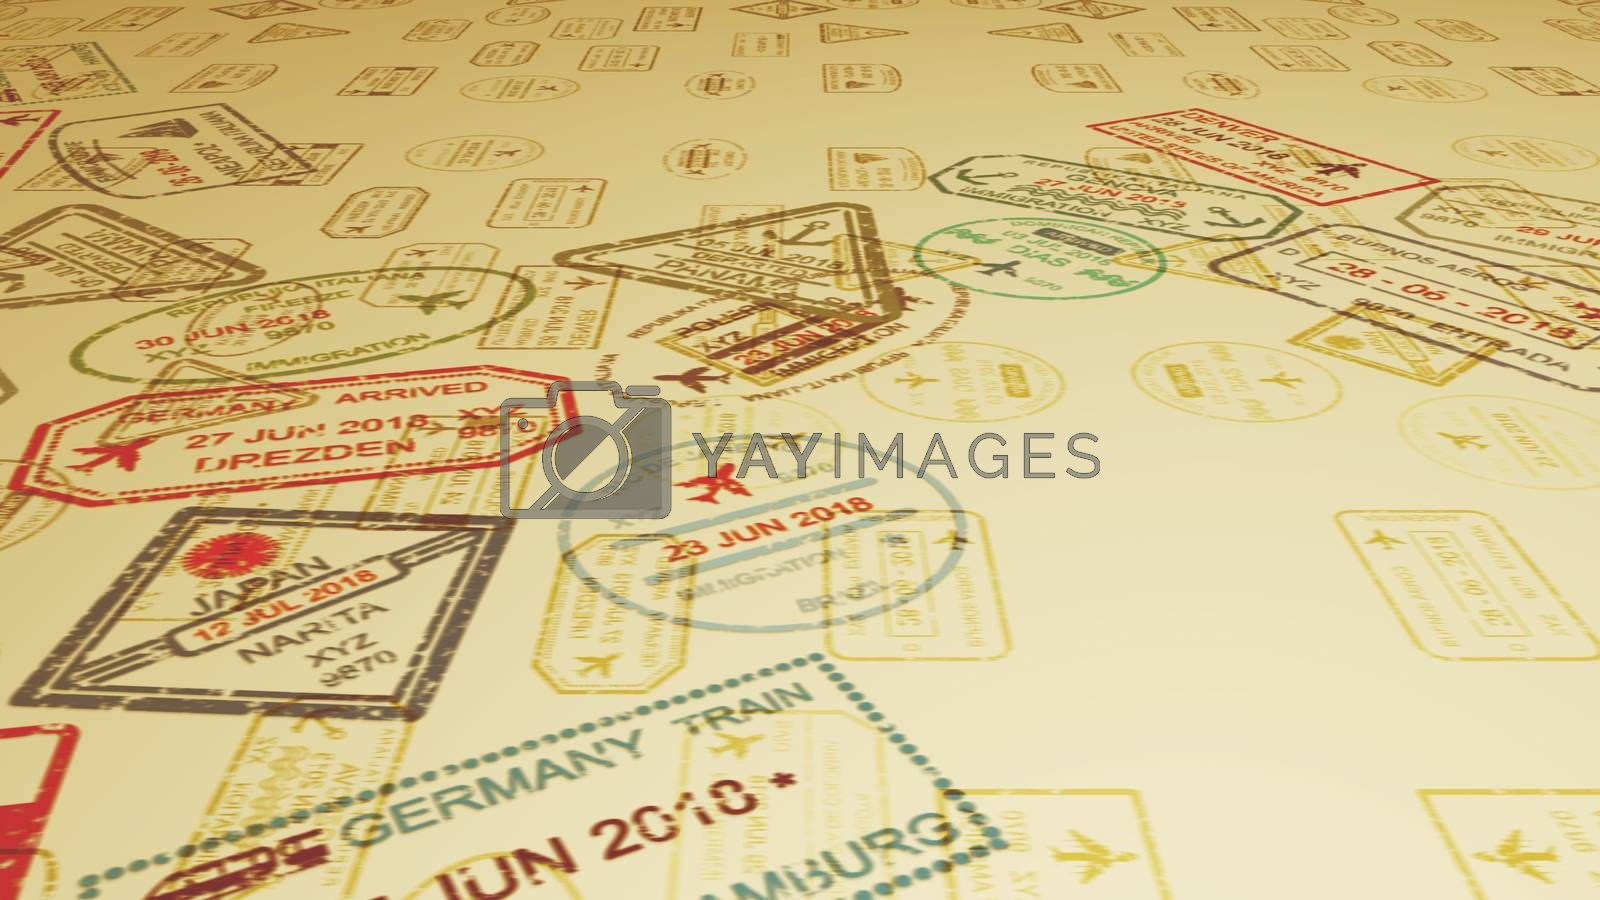 An inspirational 3d illustration of travel stamps with airplanes landing on slanting sandy surface full of visa marks in the camel yellow background. It looks cheerful and optimistic